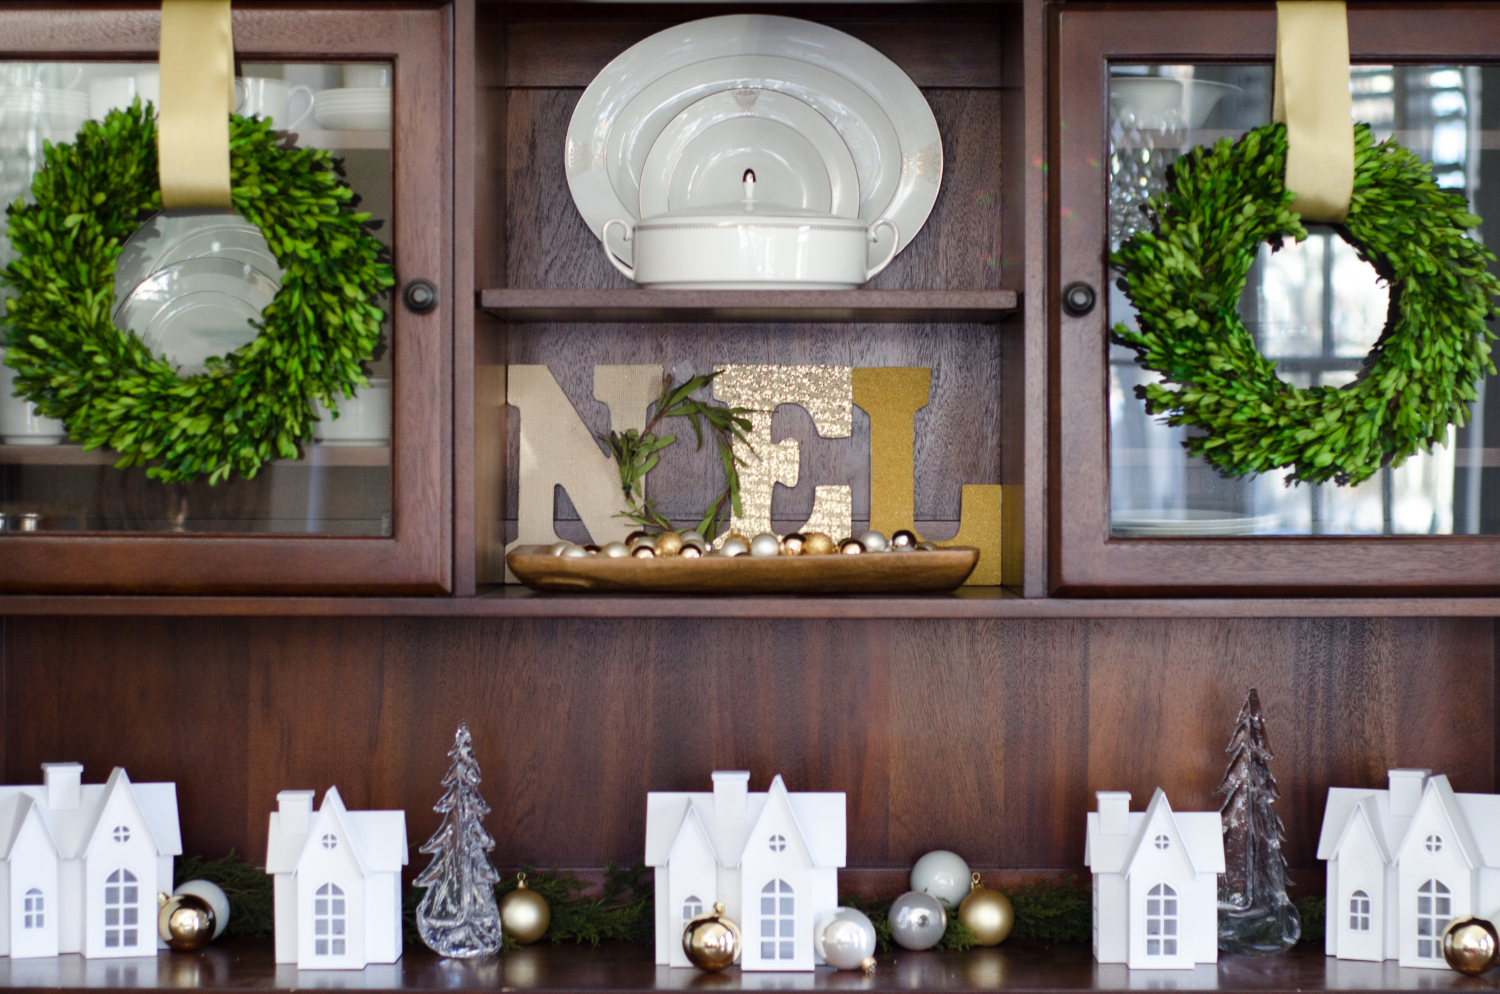 Christmas dining room with boxwood wreaths, Noel display, and a Christmas village scene